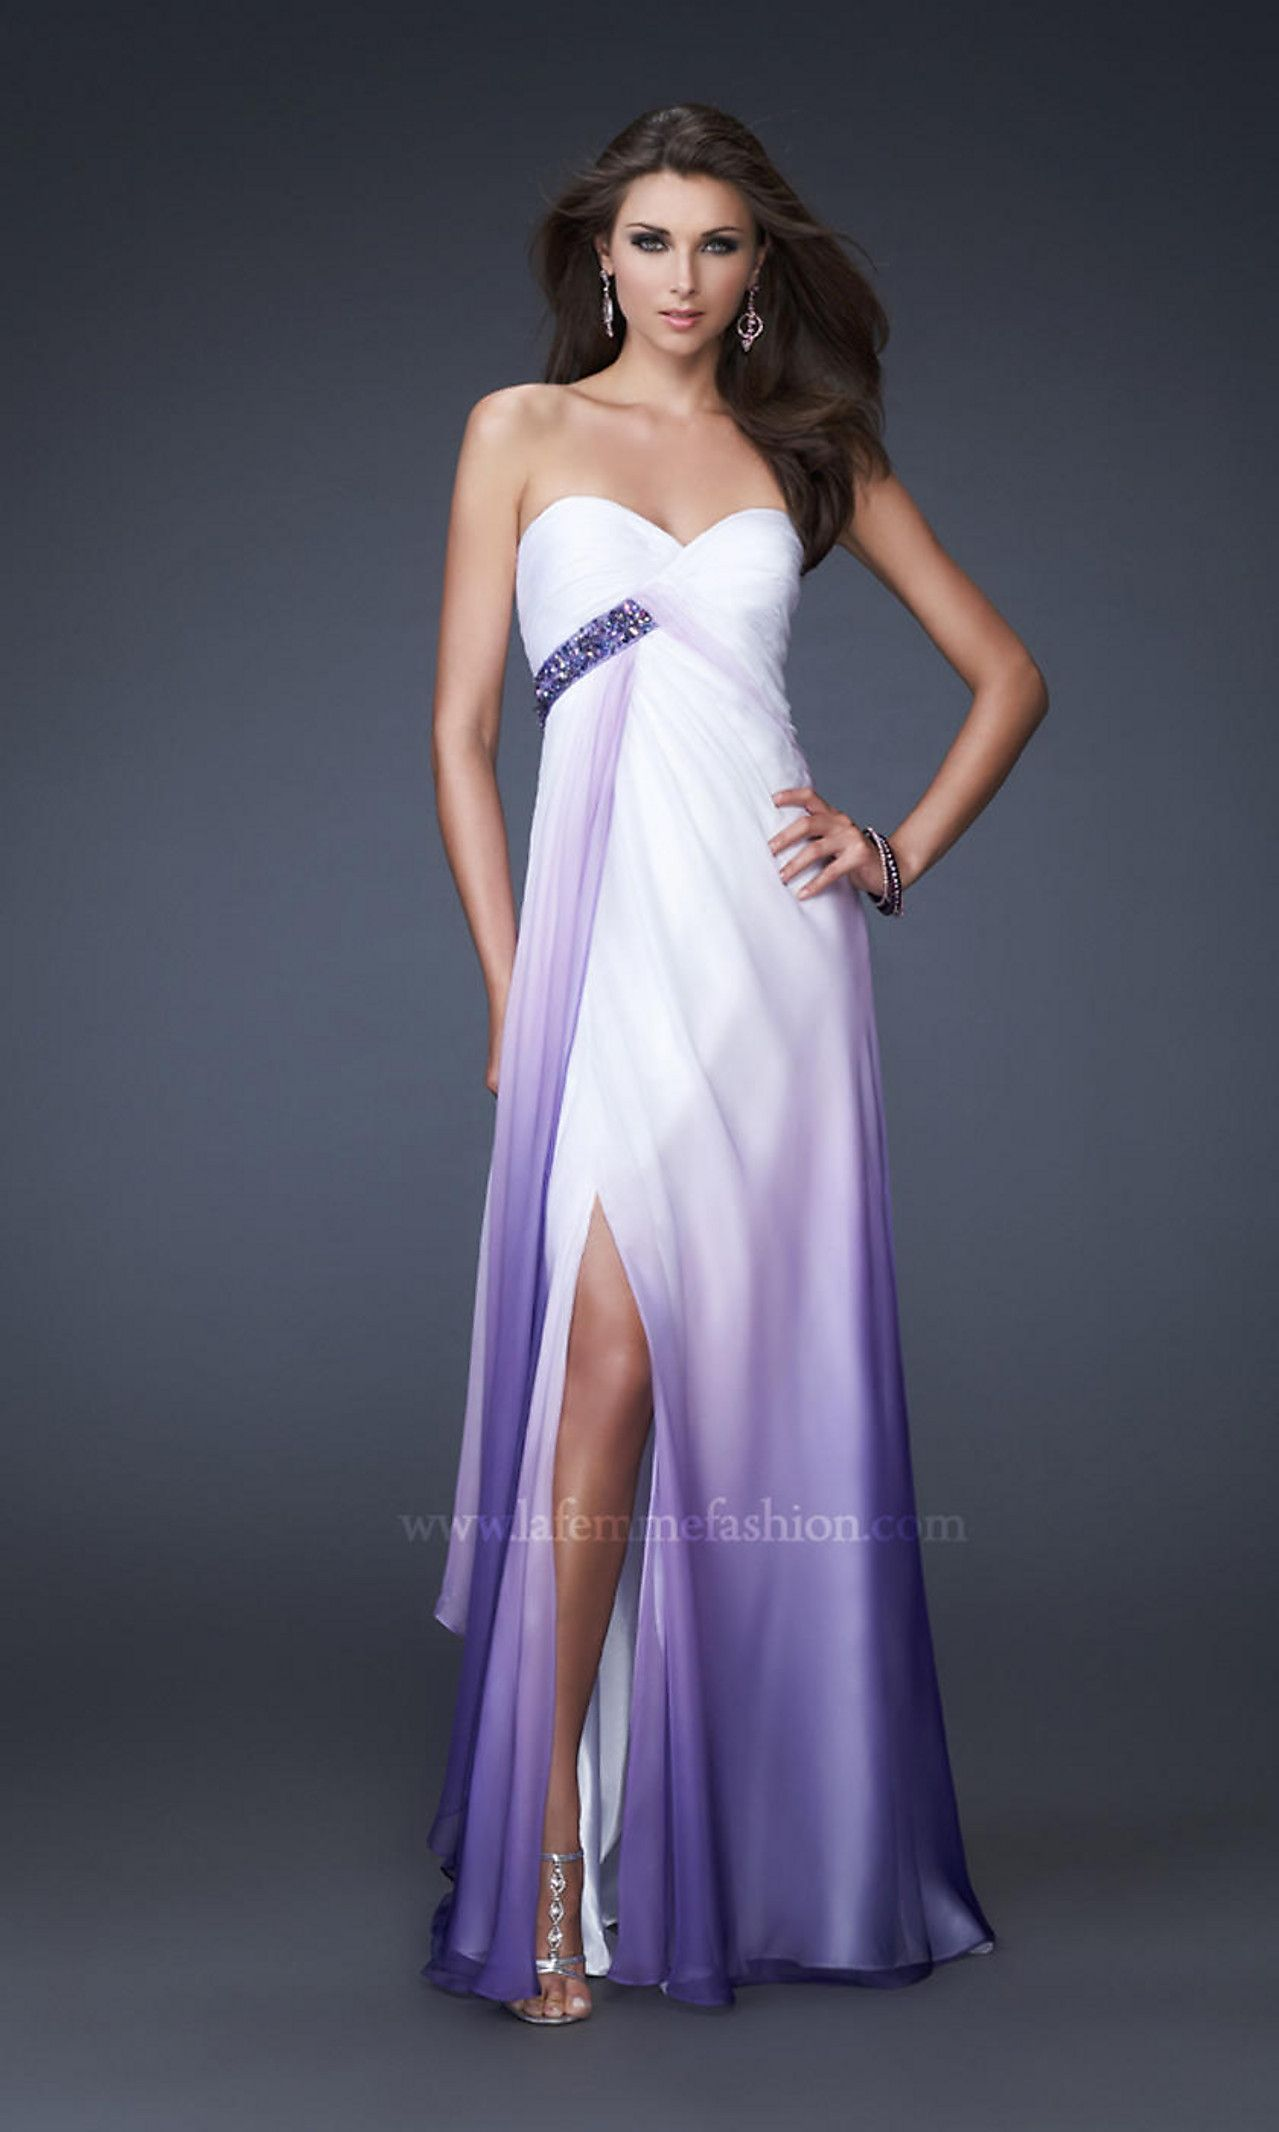 Purple ombré gown couture pinterest gowns purple dress and